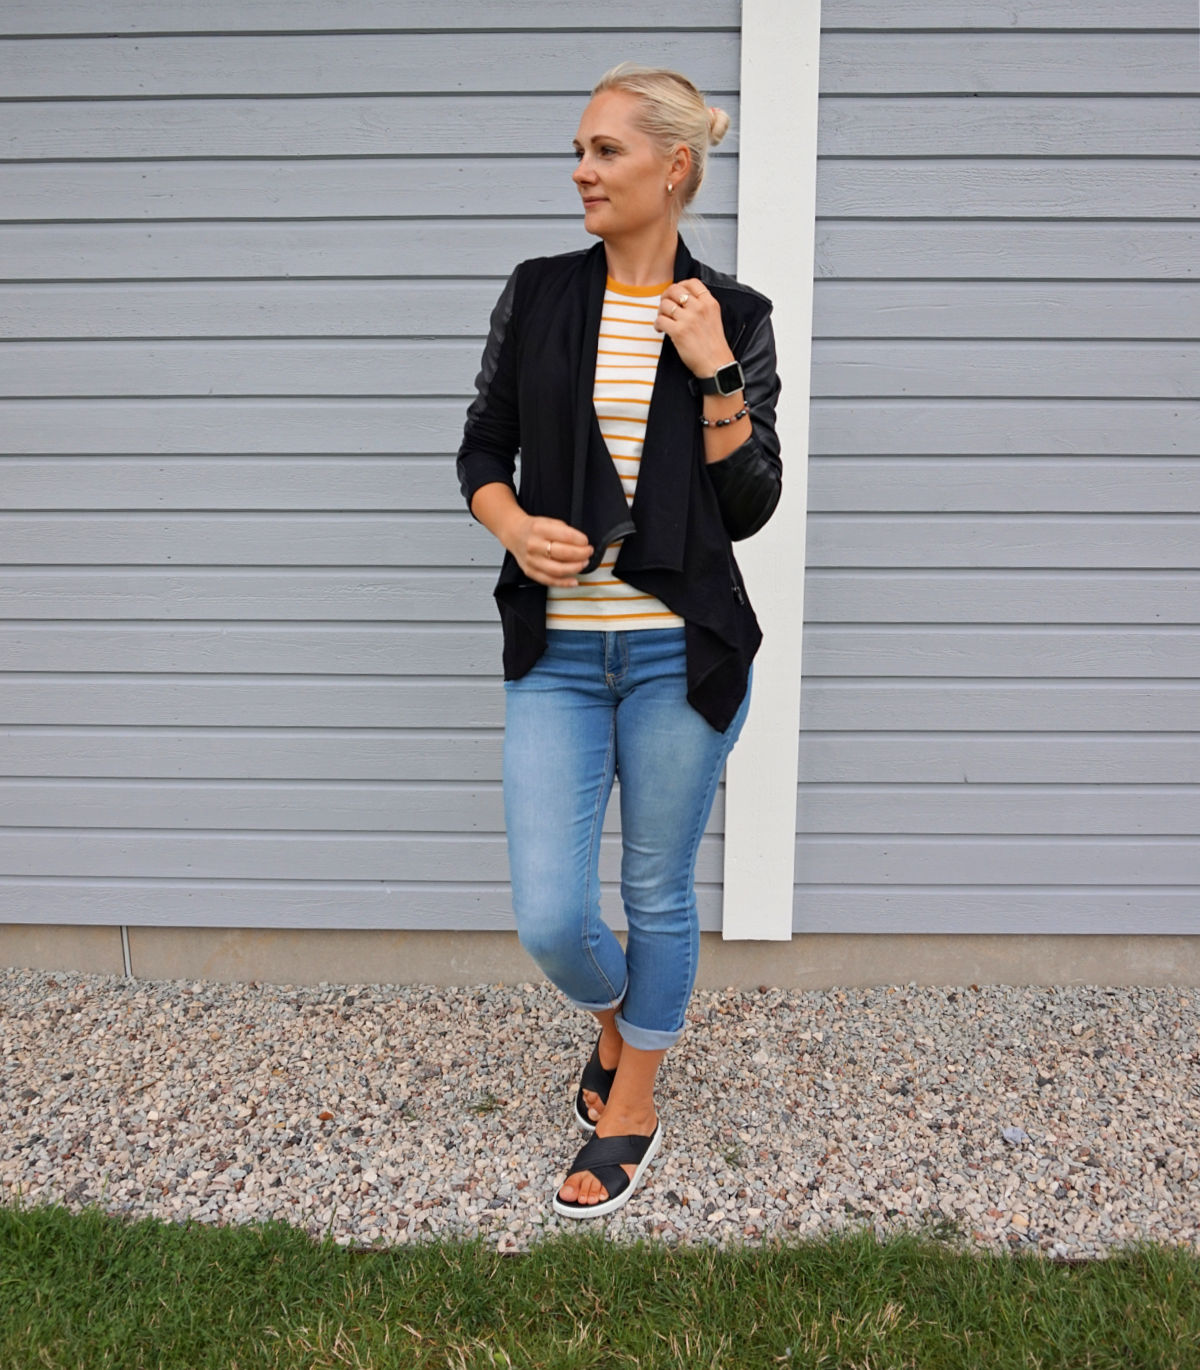 Simple casual outfit - skinny jeans, slip on sandals, striped t-shirt, leather jacket